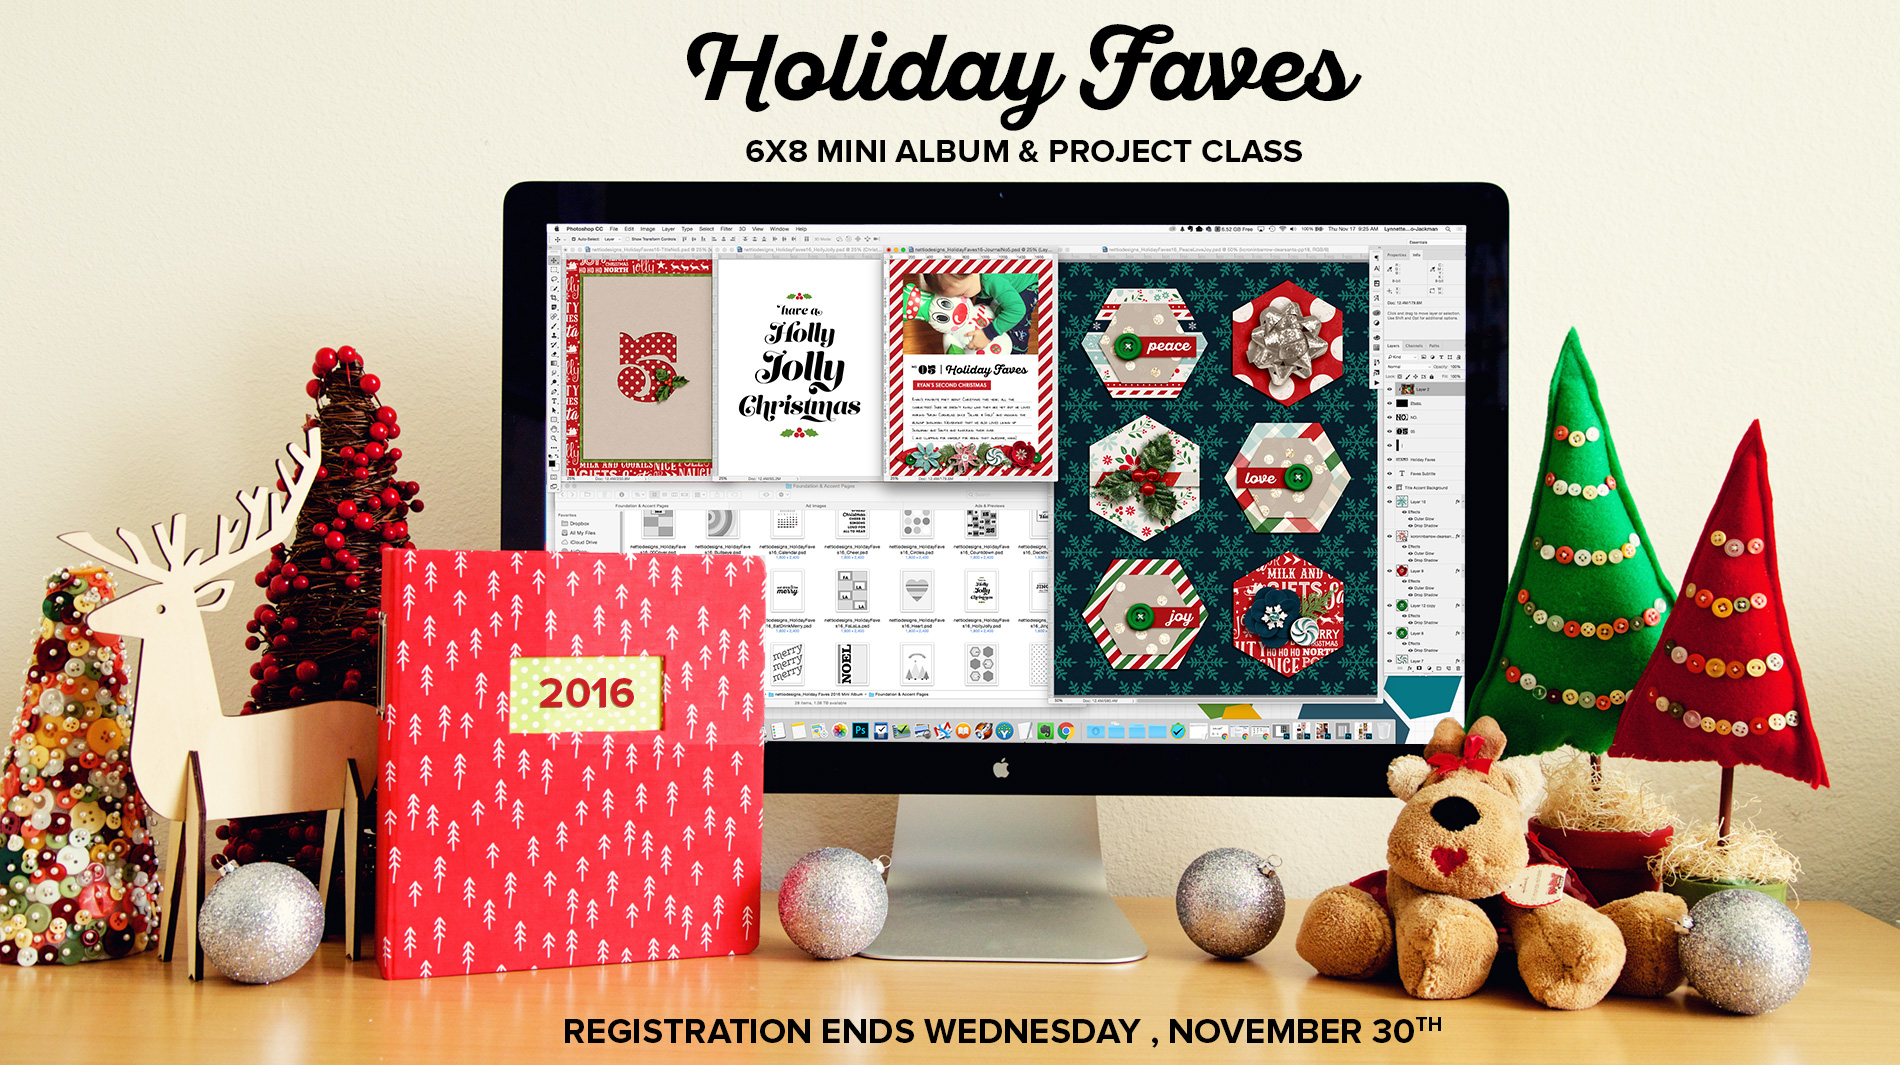 nettiodesigns_holiday-faves-2016-header